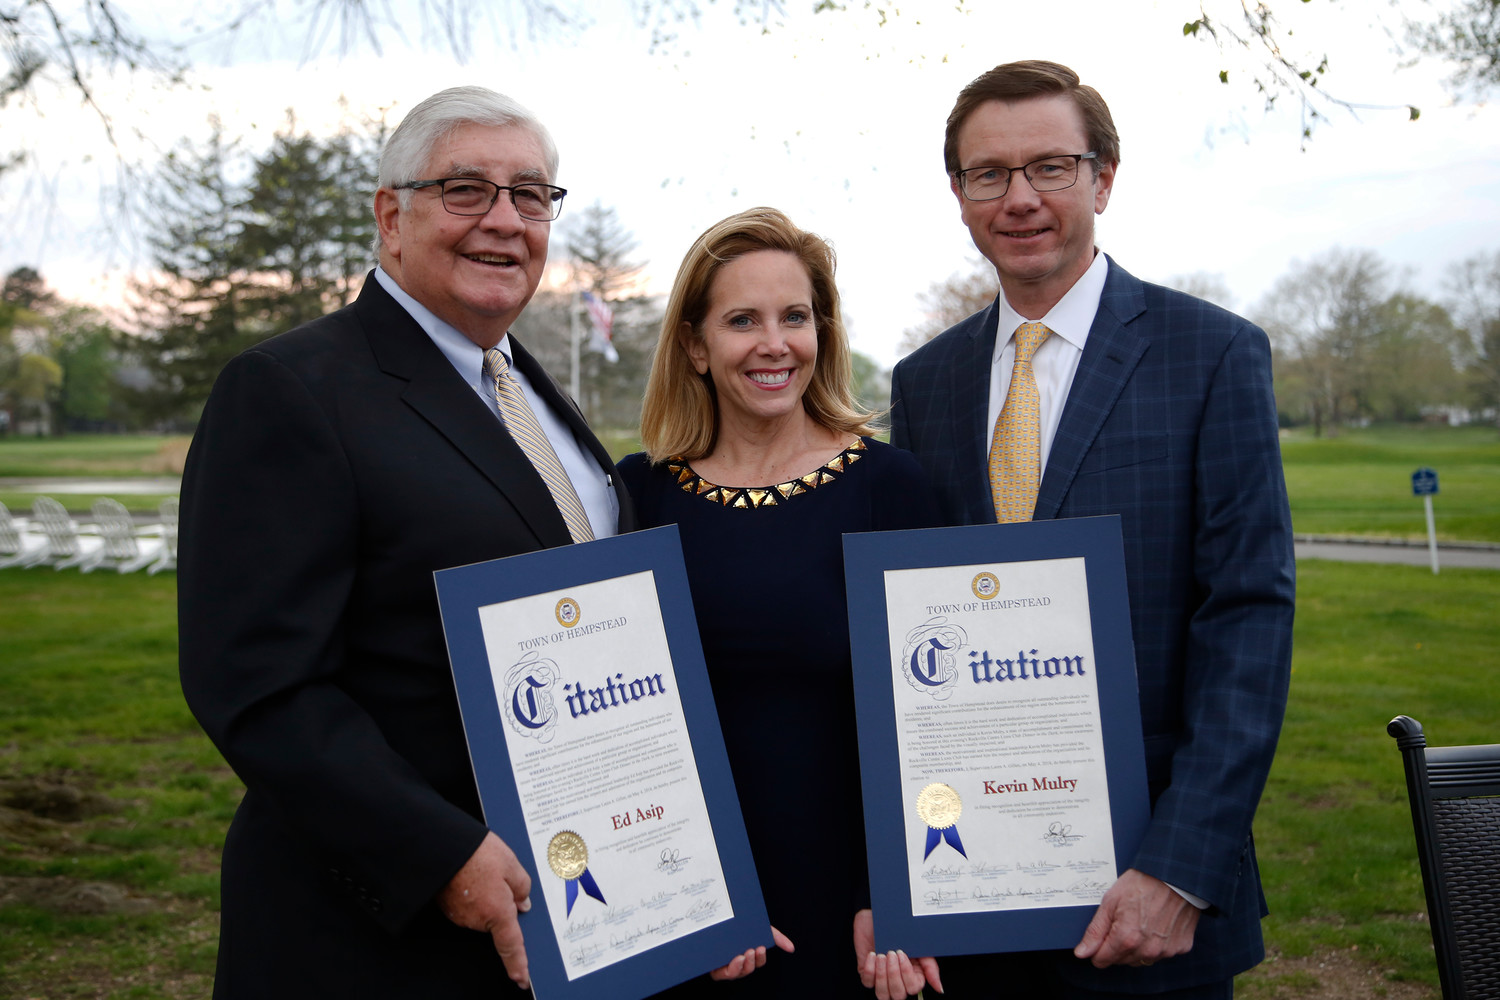 Town of Hempstead Supervisor Laura Gillen, middle, recognized honorees Ed Asip and Kevin Mulry.